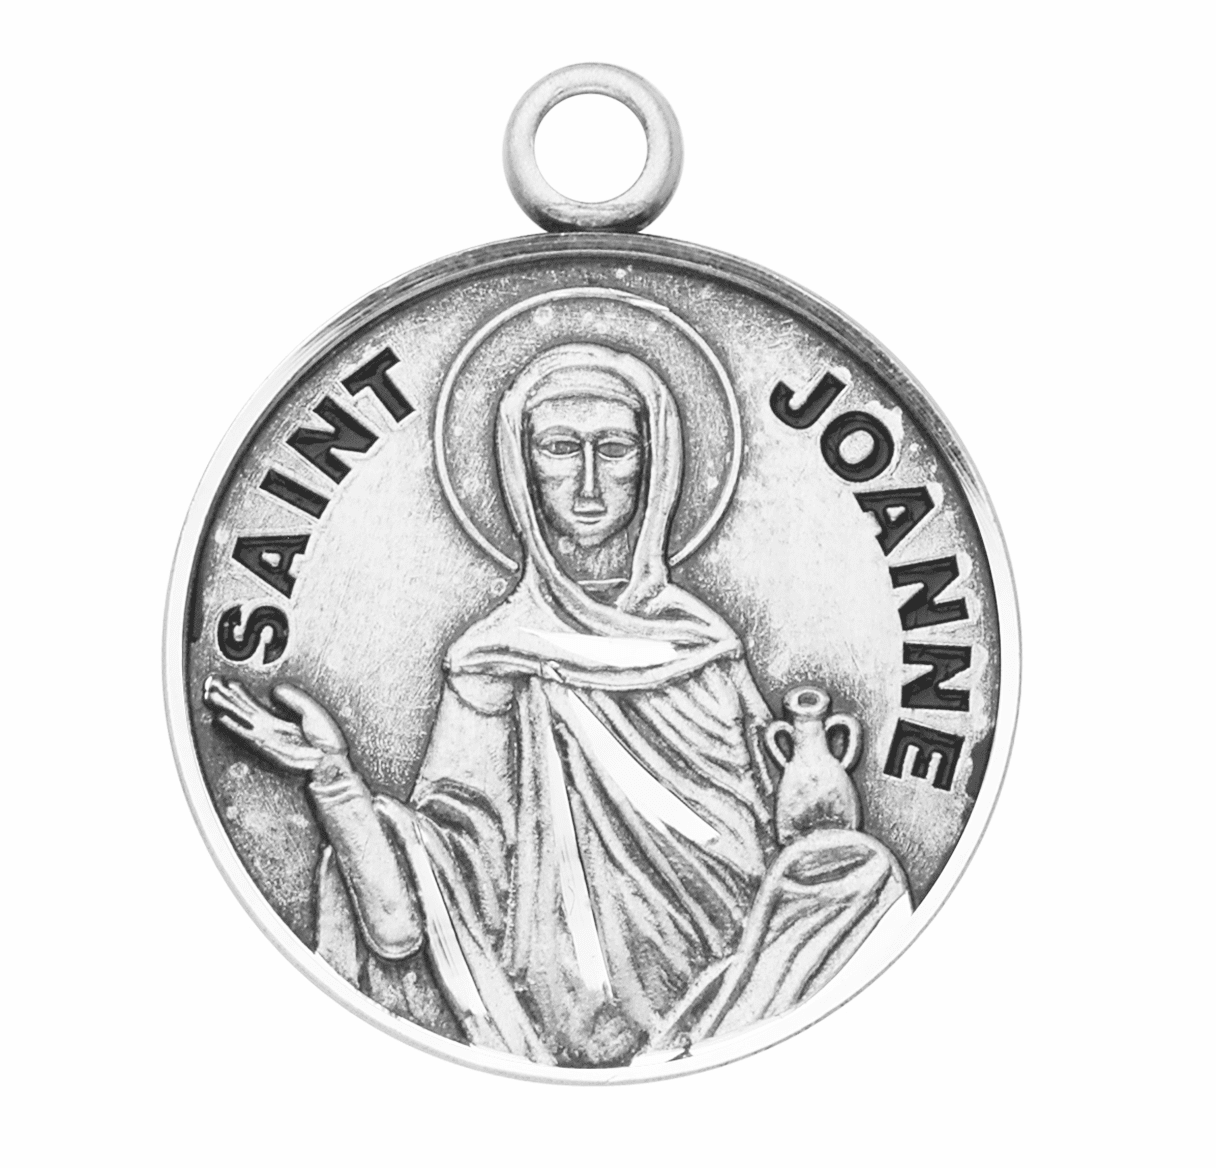 St Joanne Patron Saint of Anointing/Desperate Cases Jewelry & Gifts